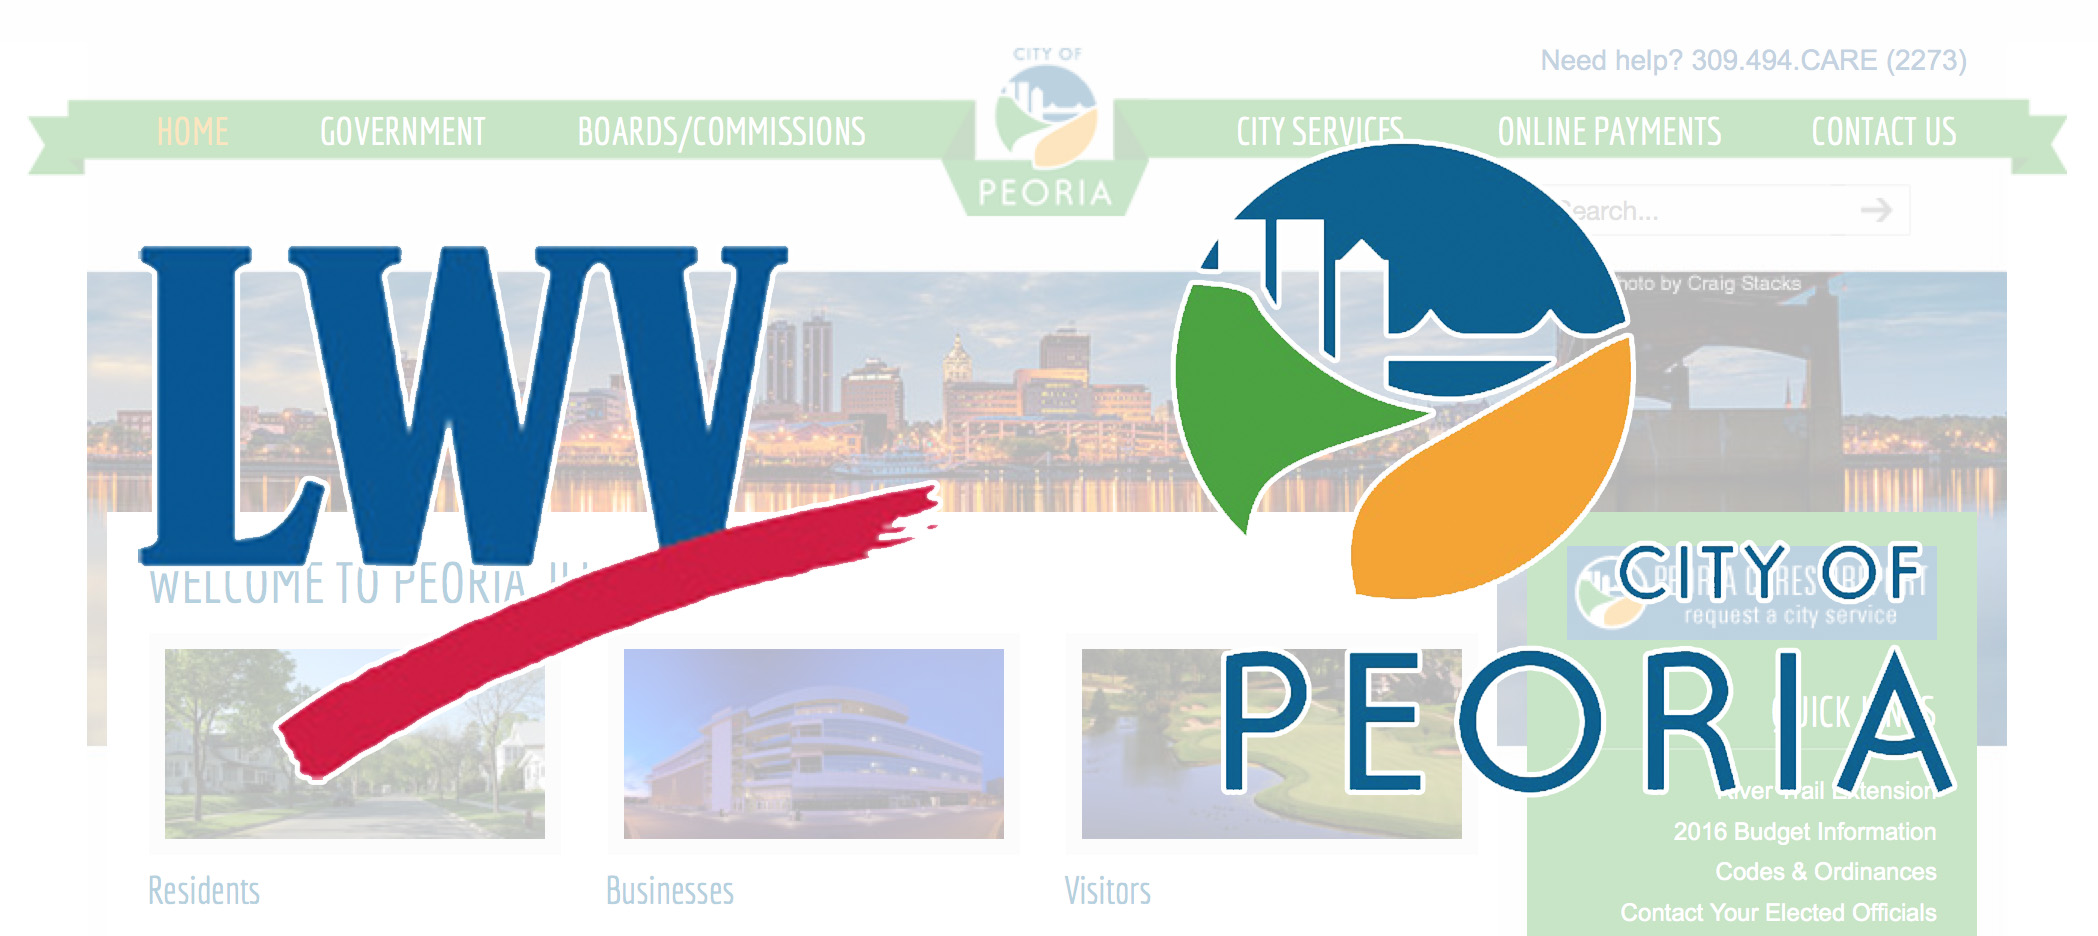 """CITY OF PEORIA WEBSITE RECEIVES """"A"""" RATING"""